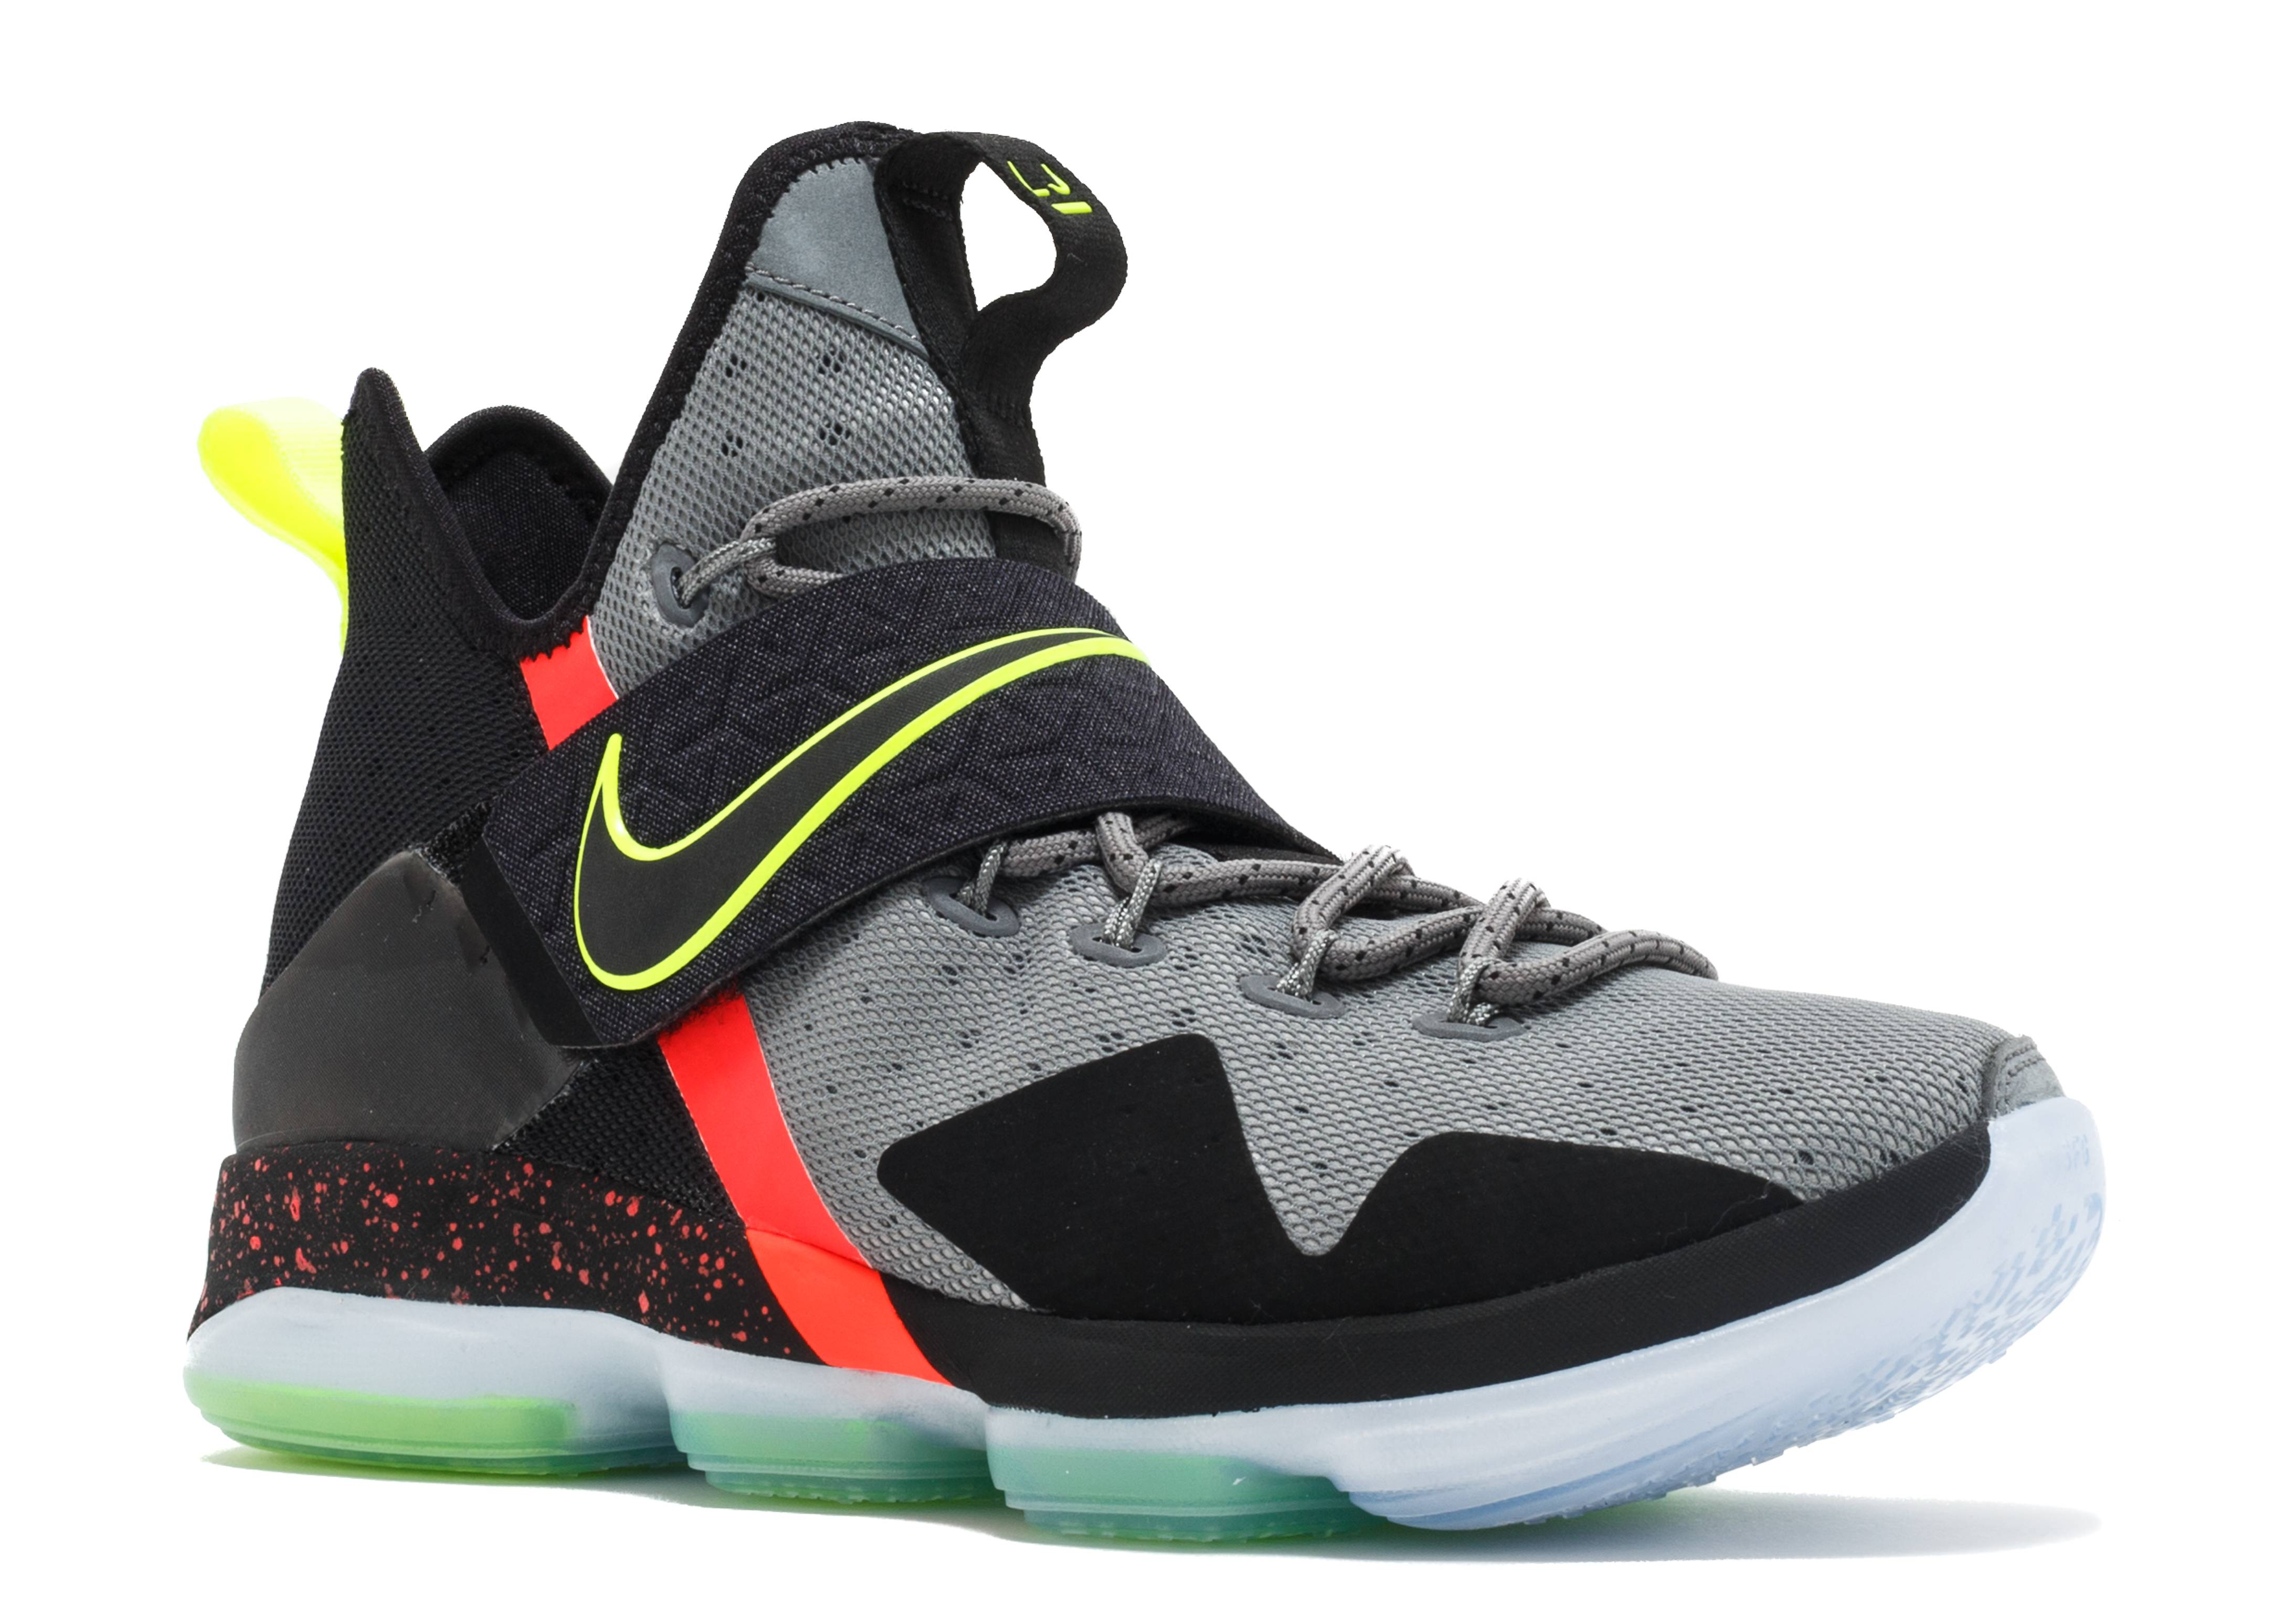 80ef4b0d8758 ... nike. lebron 14 out of nowhere